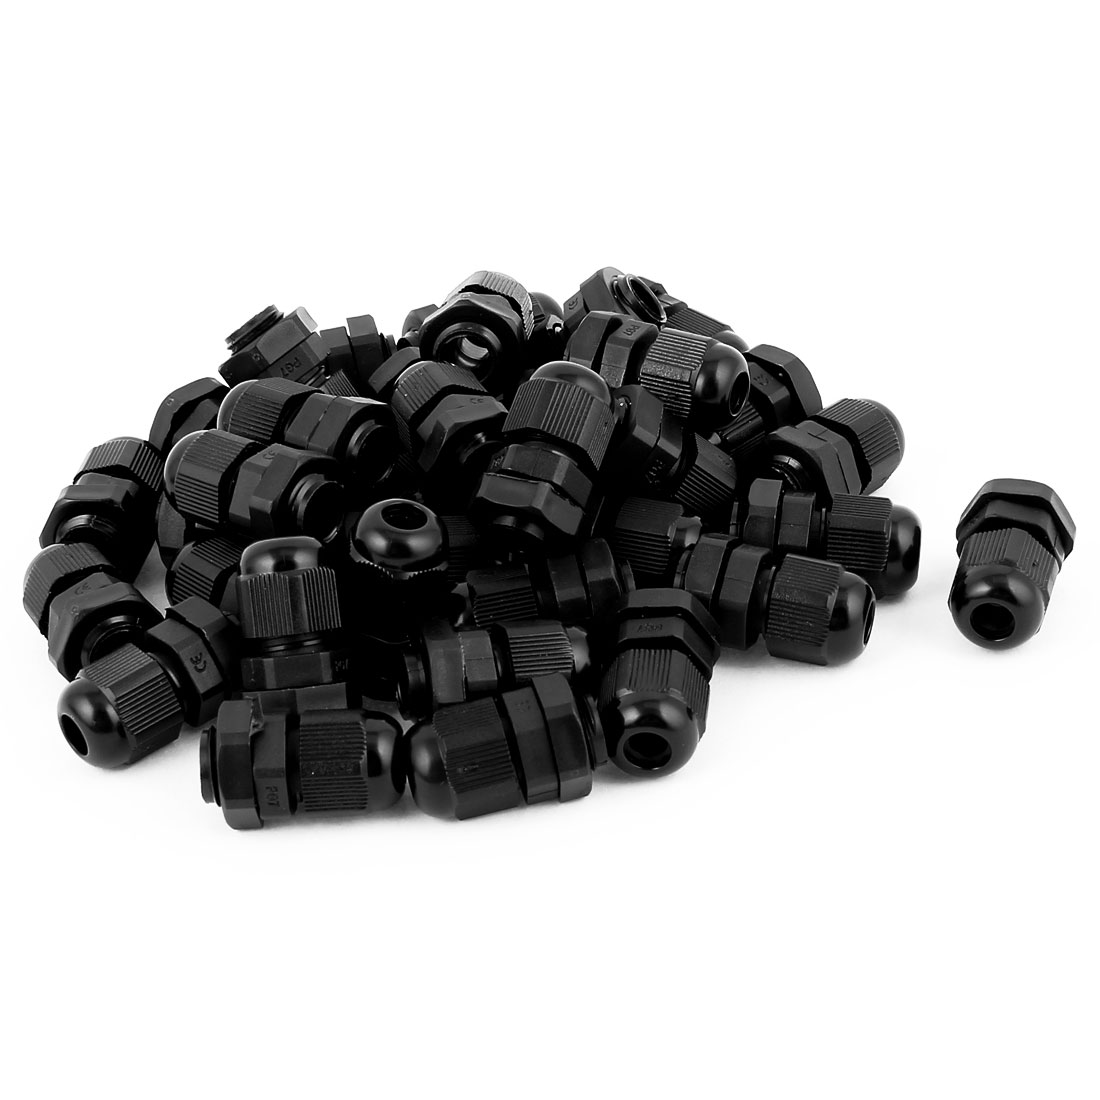 36 Pcs Waterproof Adjustable PG9 4-8mm 33 x 22mm Black Cables Gland